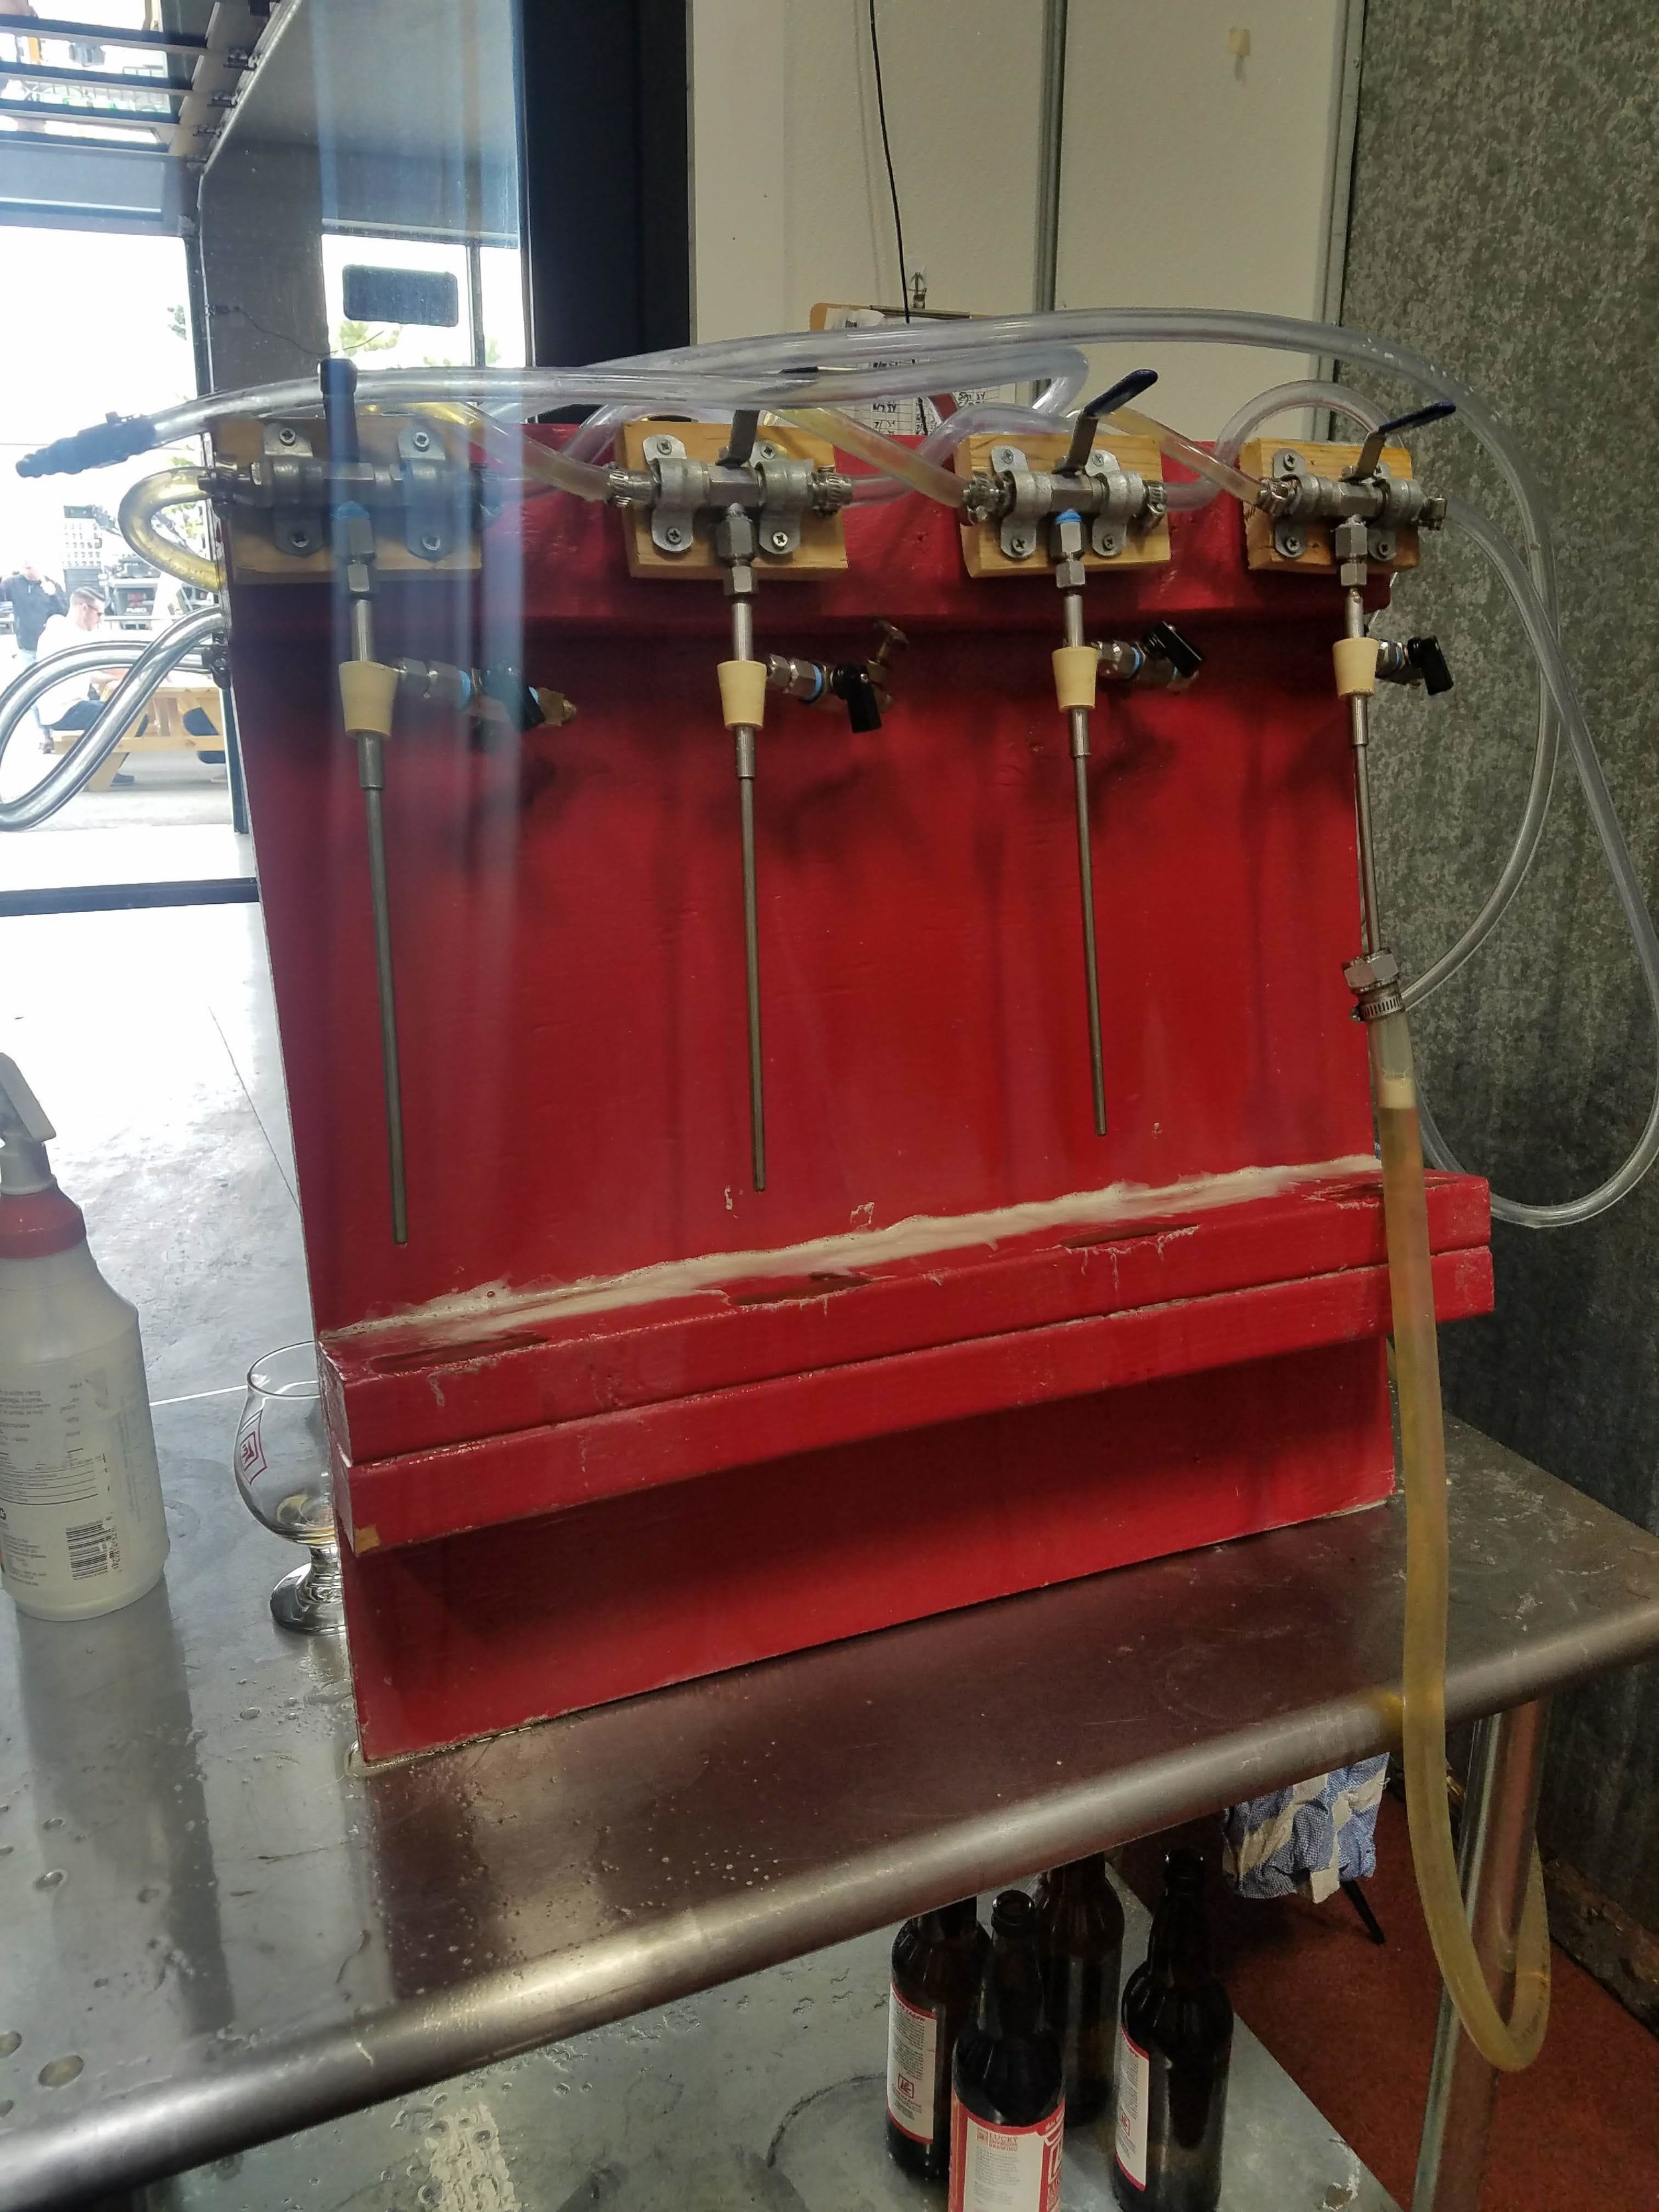 Barry's insane hand made bottle filler can fill 4 bottles at a time